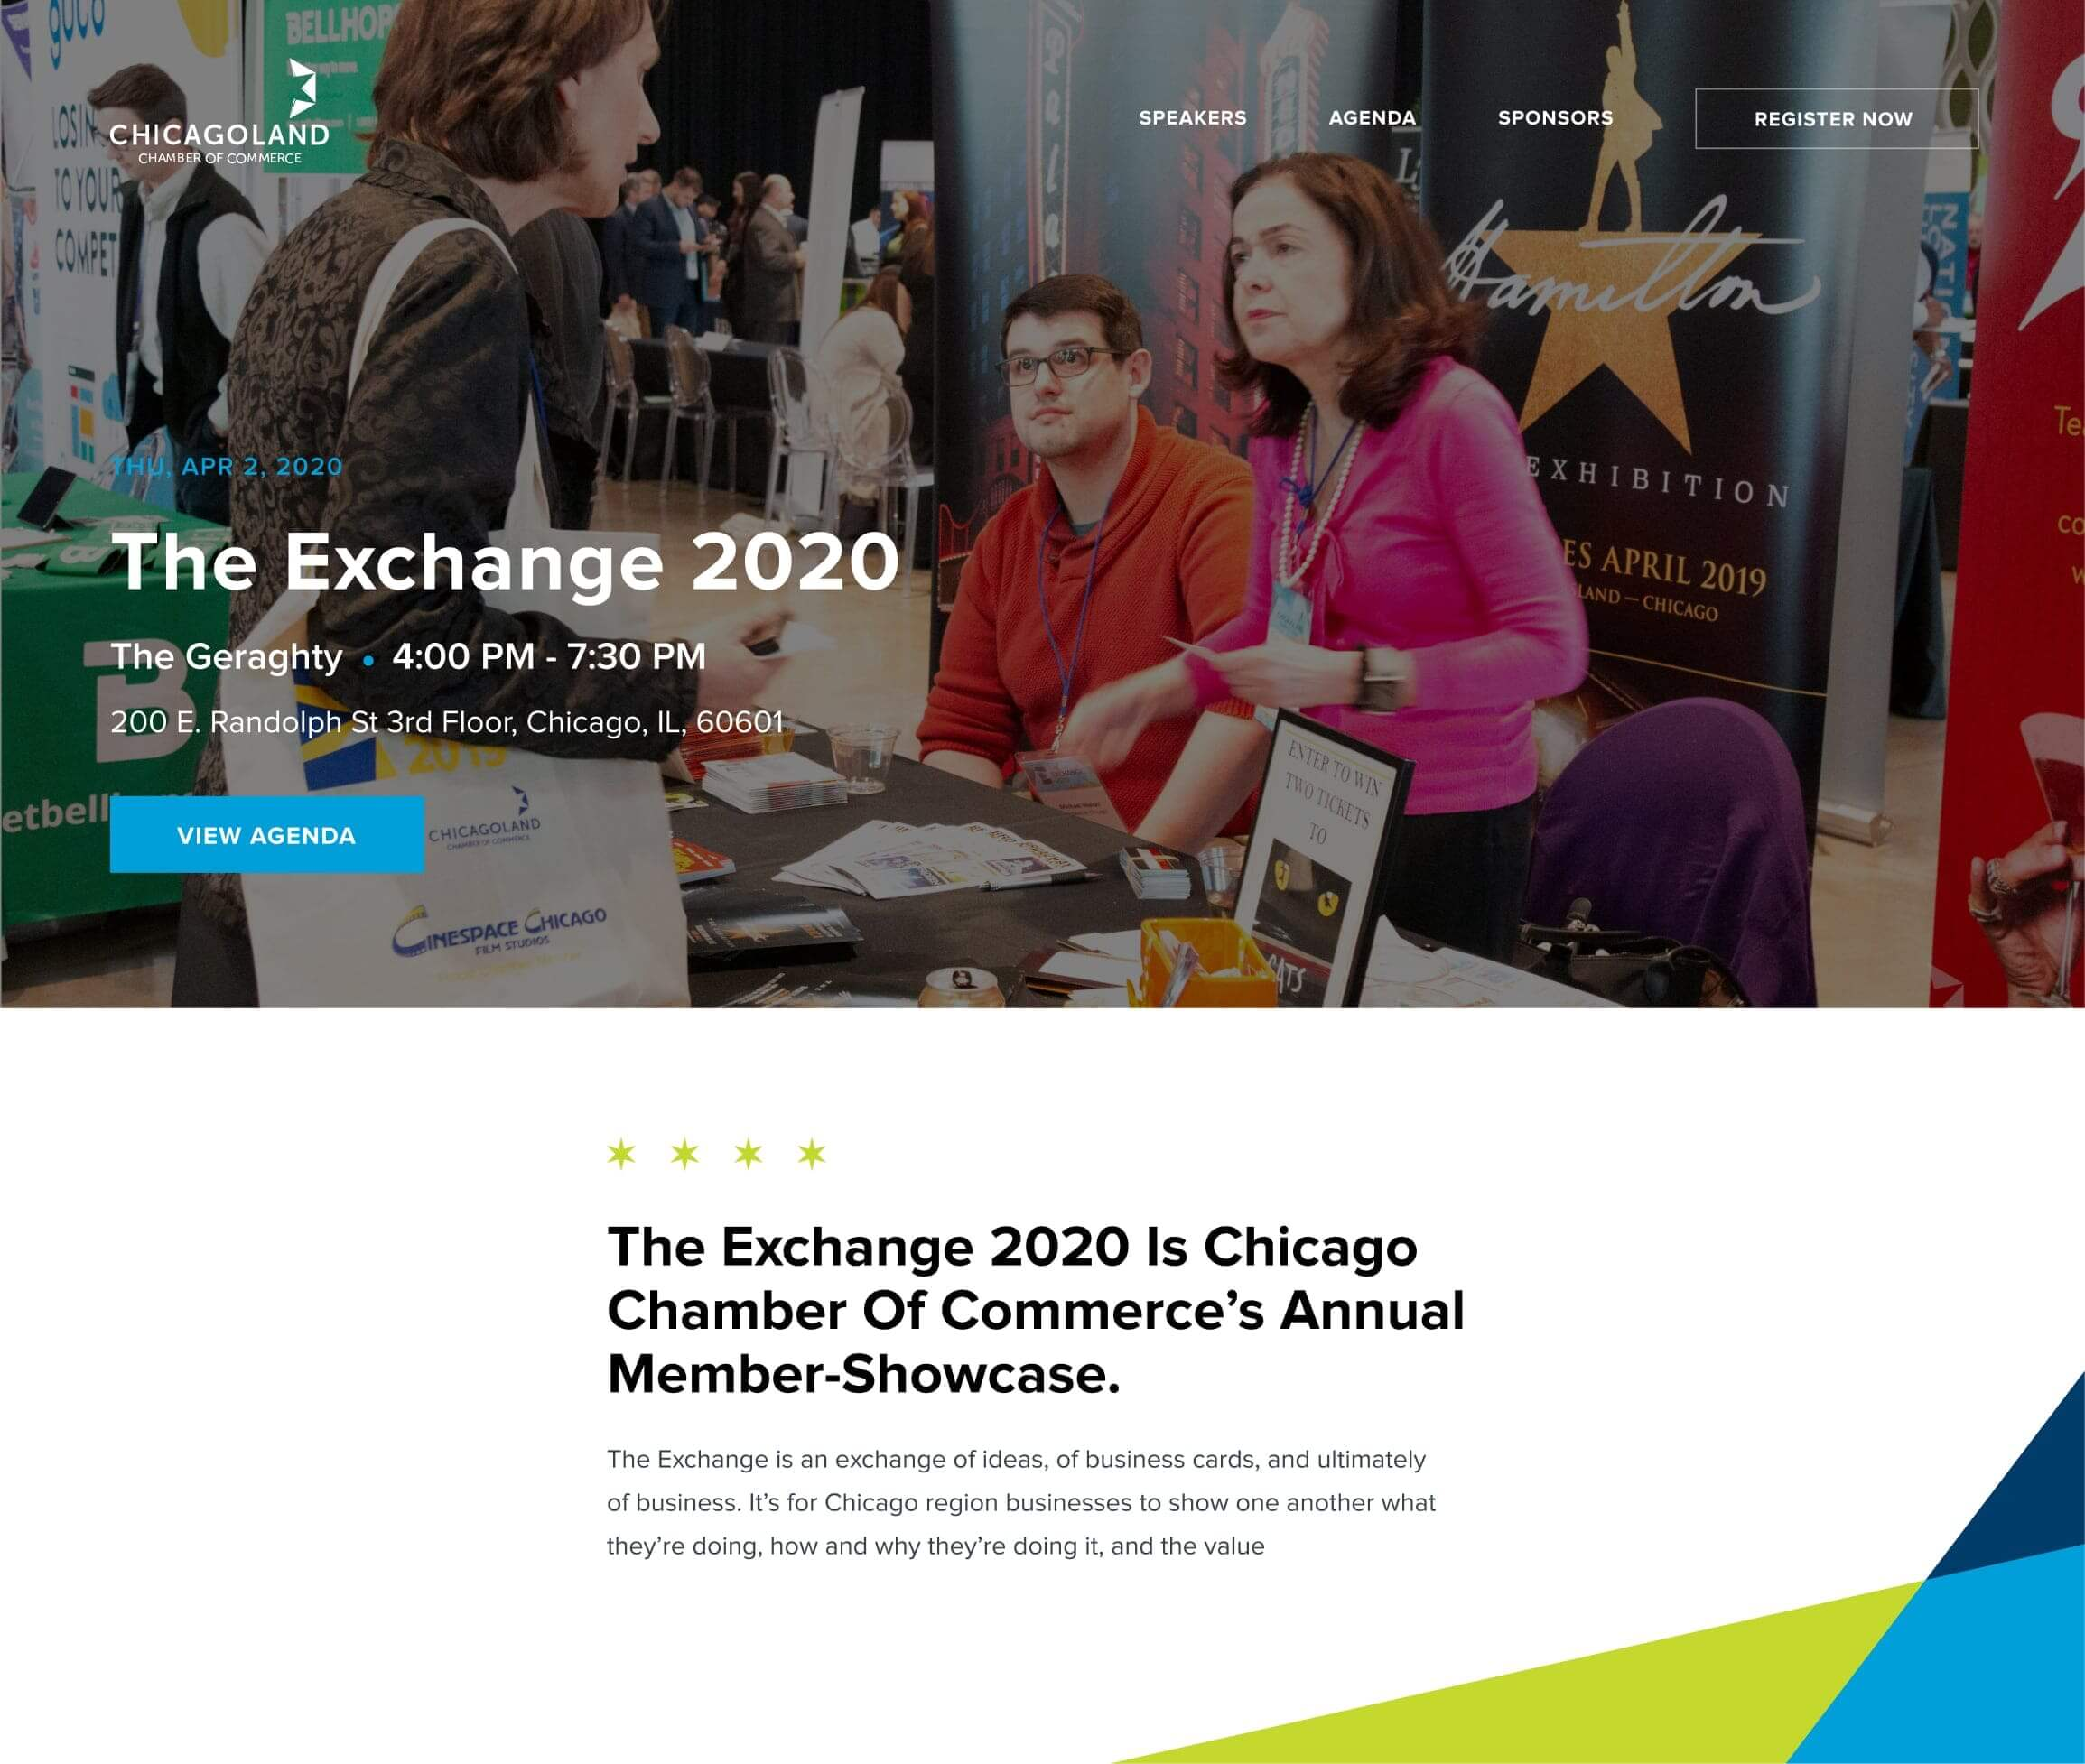 displaying Chicagoland Chamber of Commerce signature event page